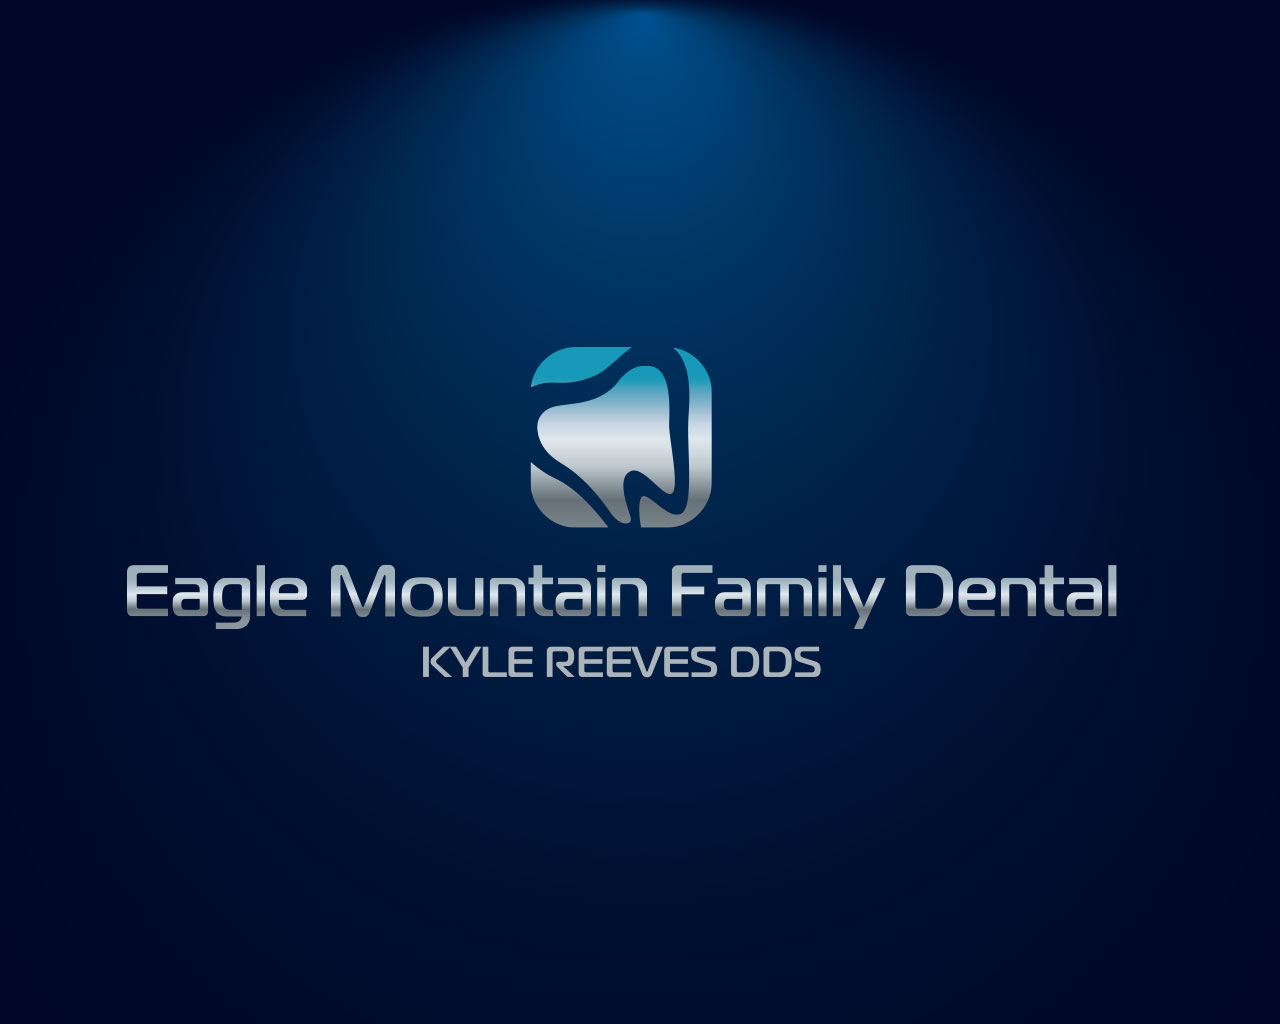 Family-Dental-logo-design